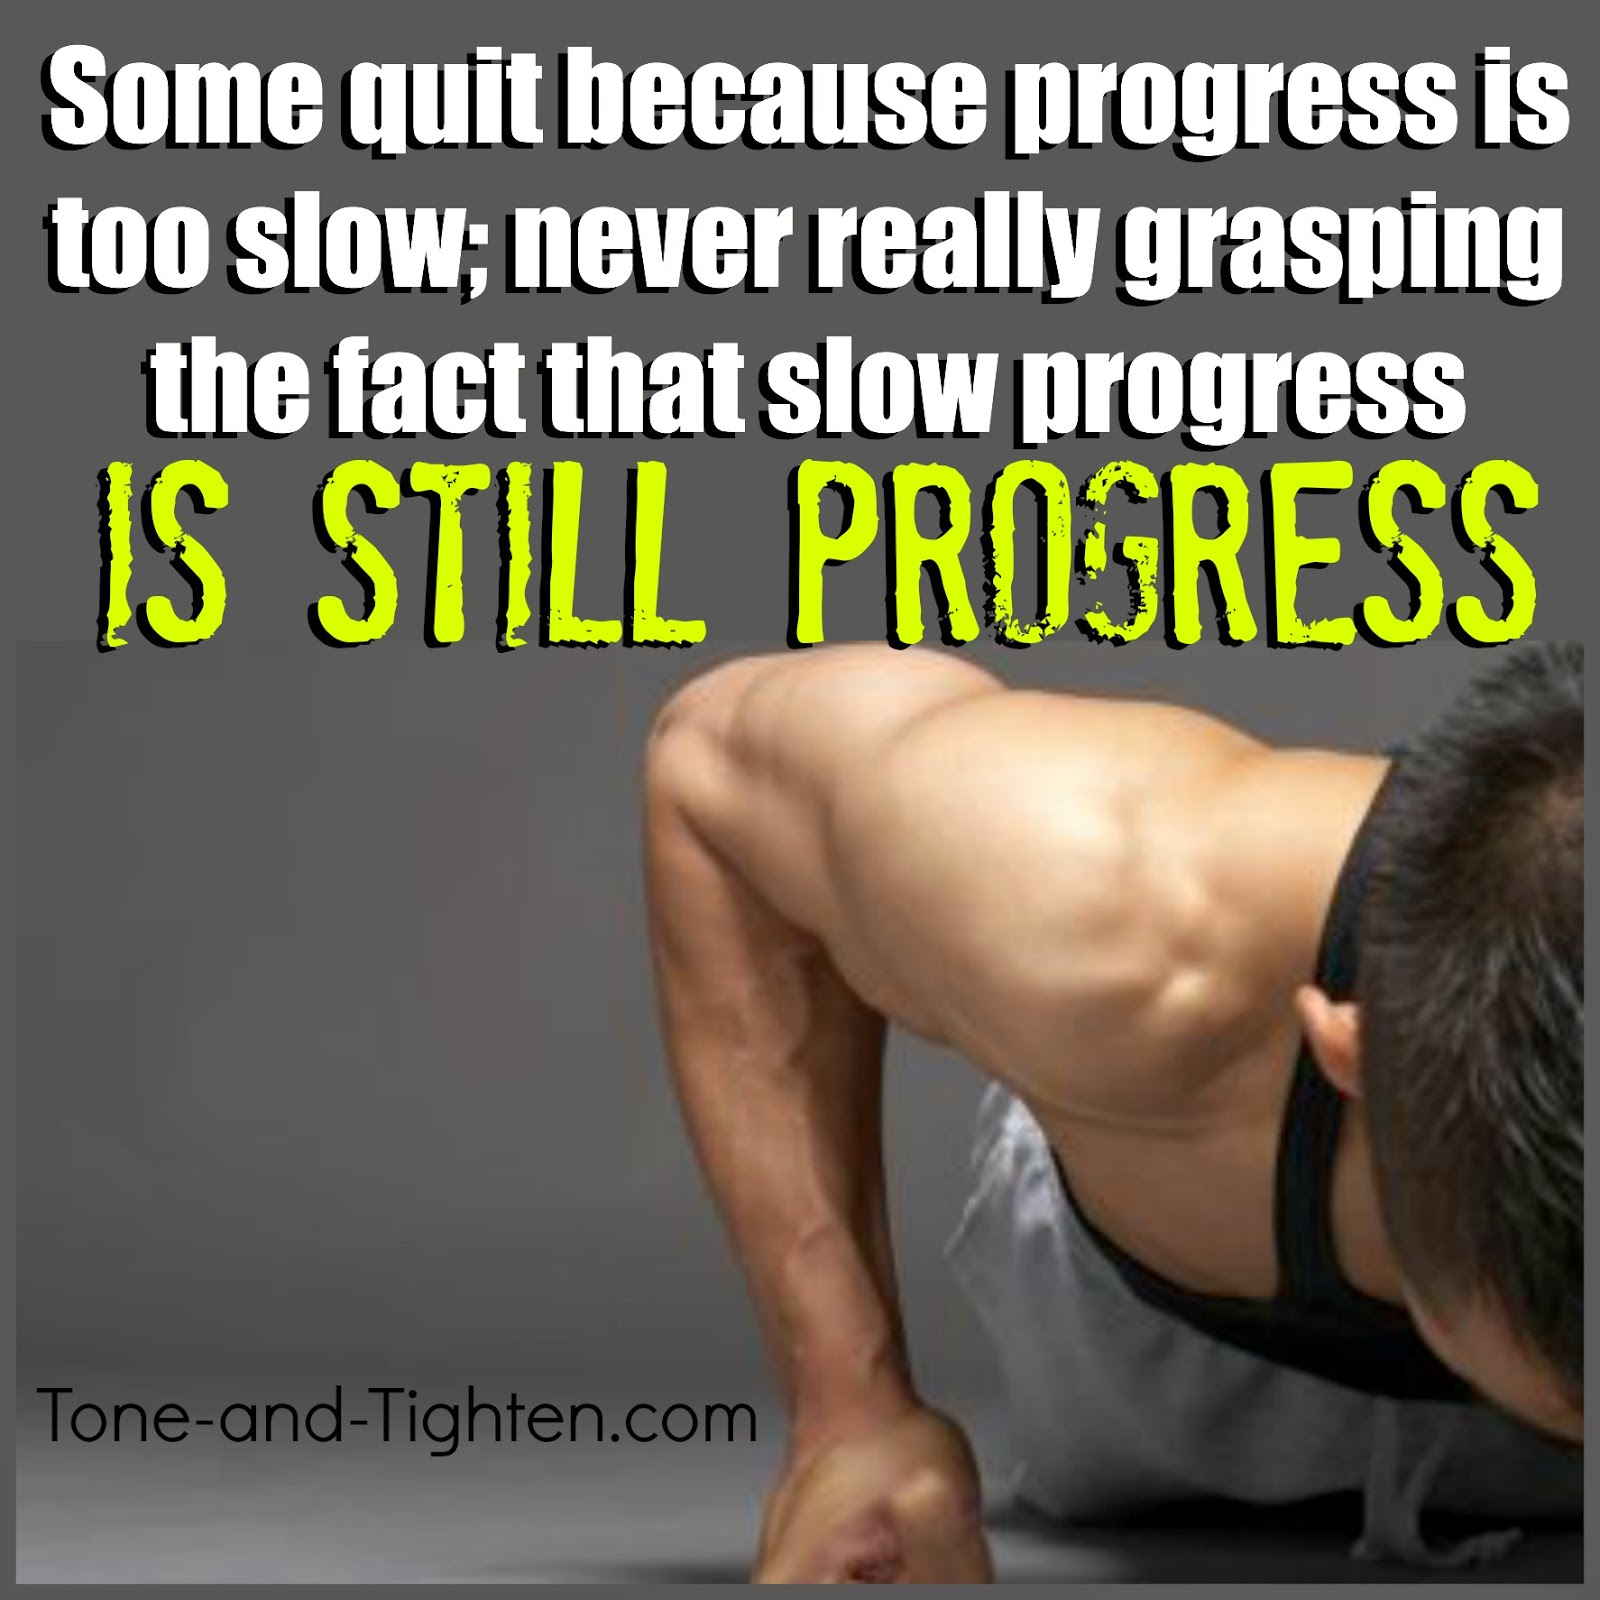 http://tone-and-tighten.com/2014/02/fitness-motivation-slow-progress-is-still-progress.html